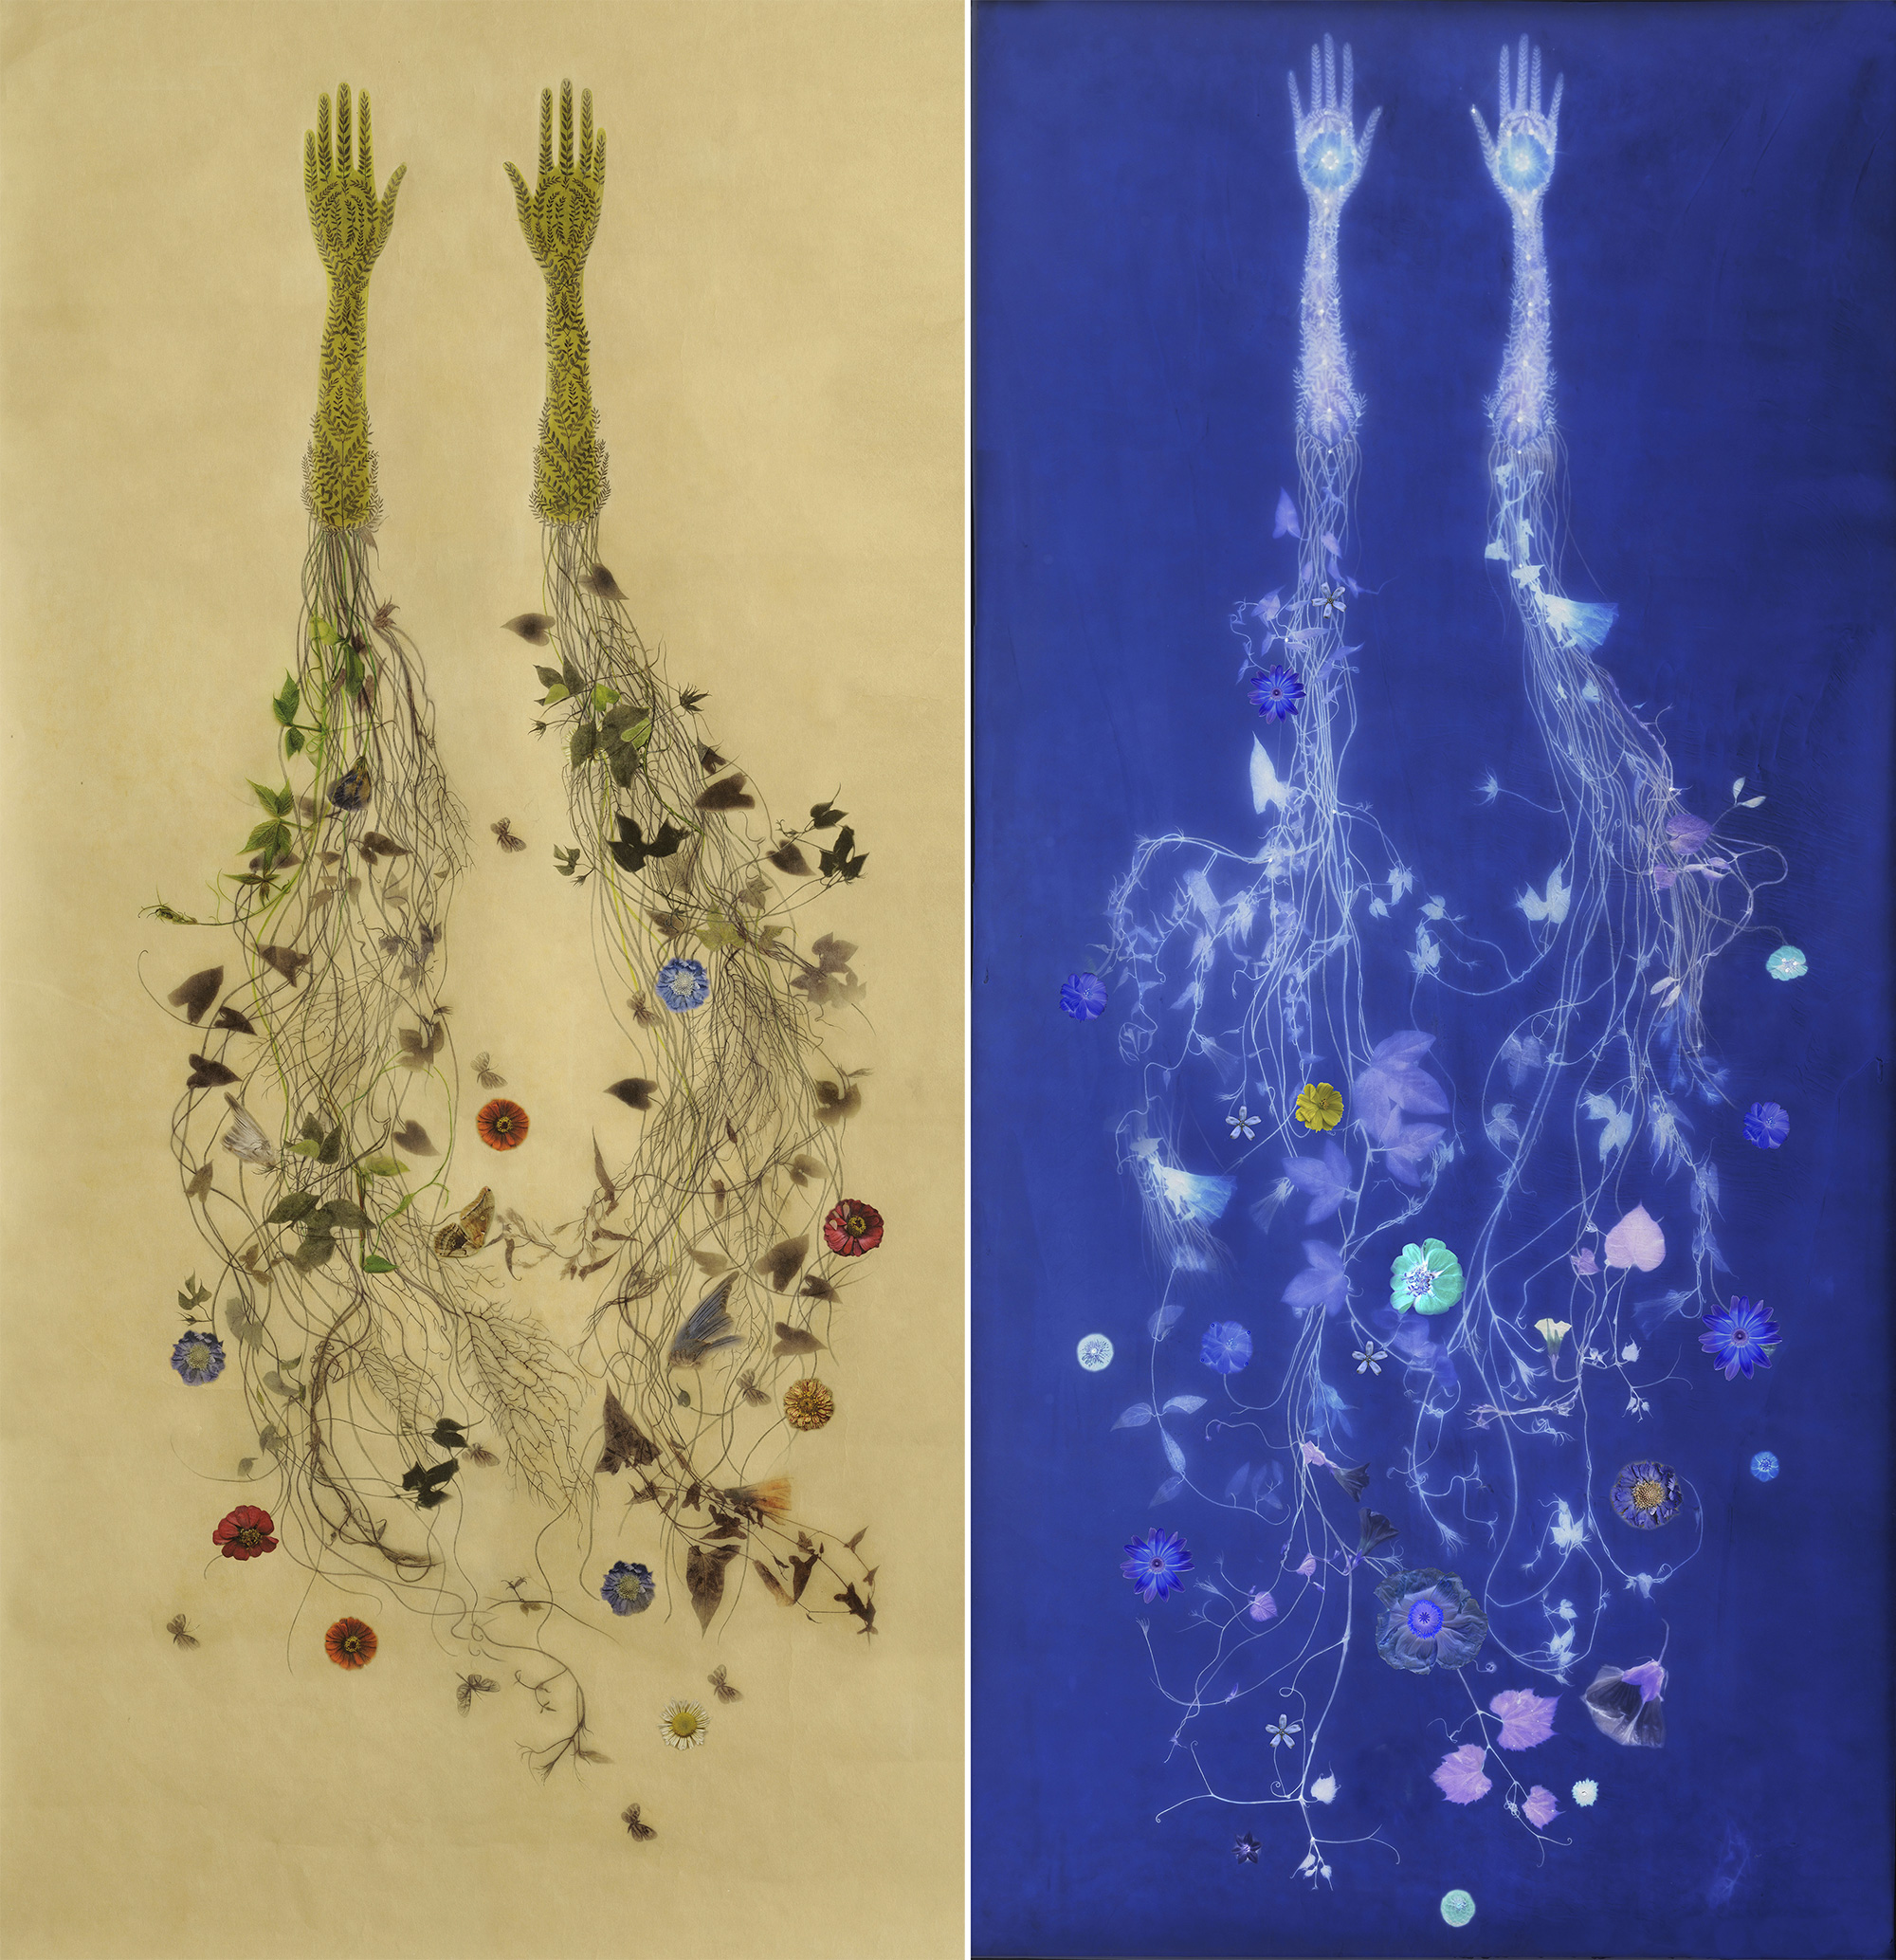 Plants Embedded in Wax Sprout from Fragile Hands in Memory-Infused Works by Valerie Hammond